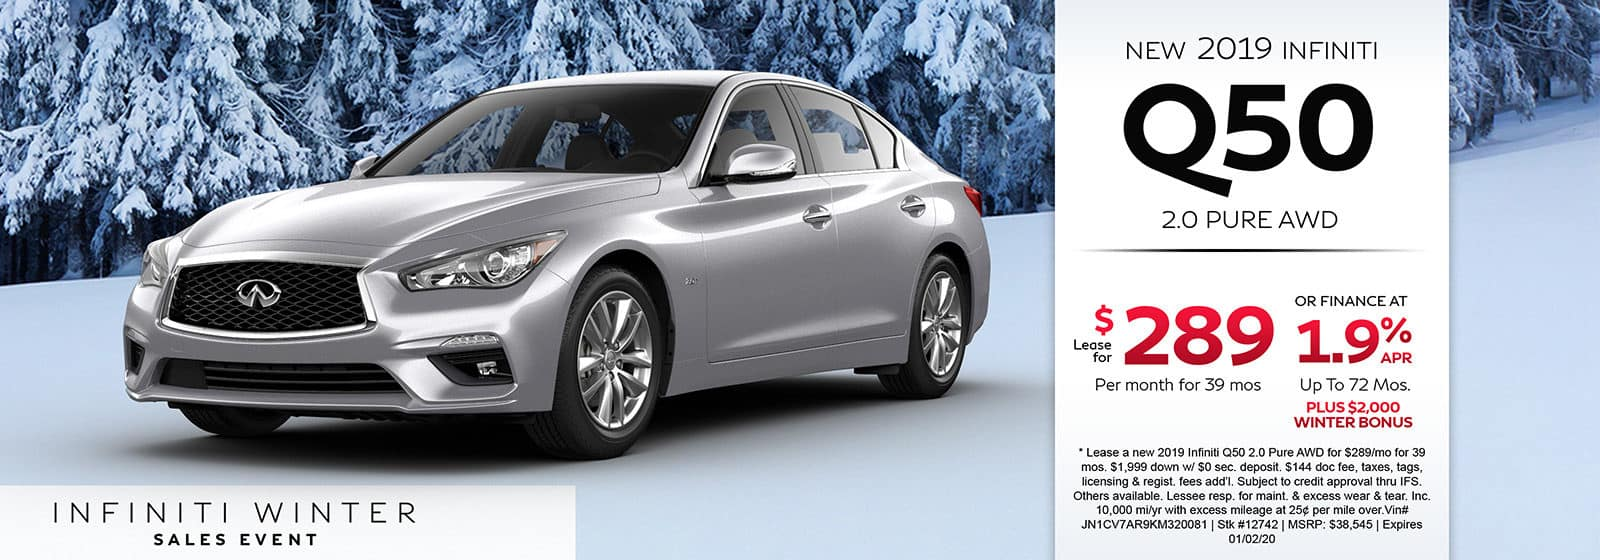 Lease a new 2019 INFINITI Q50 2.0 Pure AWD for $289 a month for 39 months. Or get special 1.9% APR financing for up to 72 months